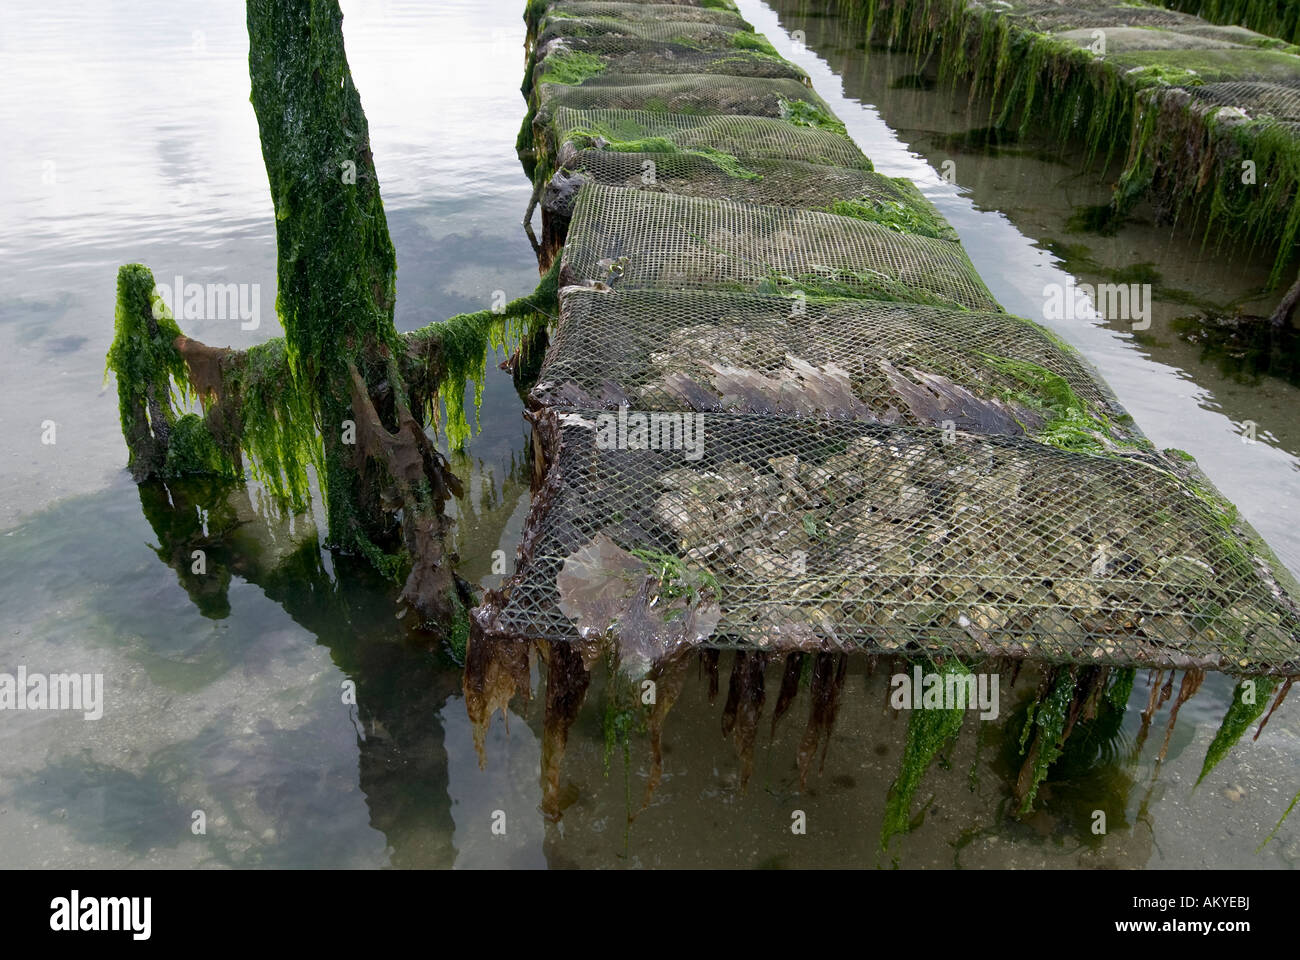 Oyster beds in the bay of Morlaix, Morlaix, Bretagne, France Stock Photo